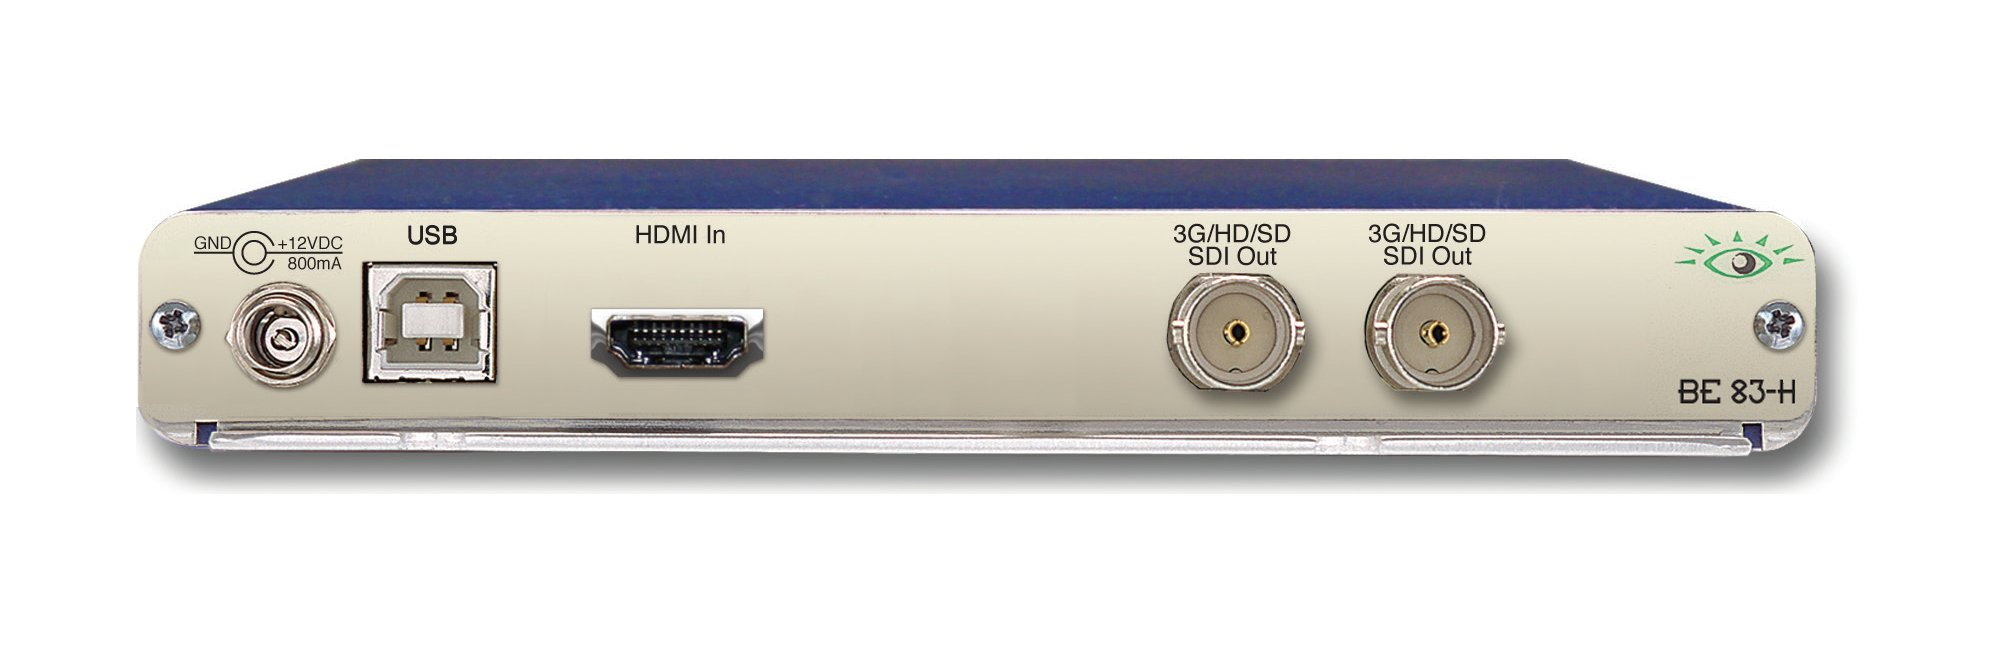 HDMI to 3G/HD/SD SDI Converter with HDCP